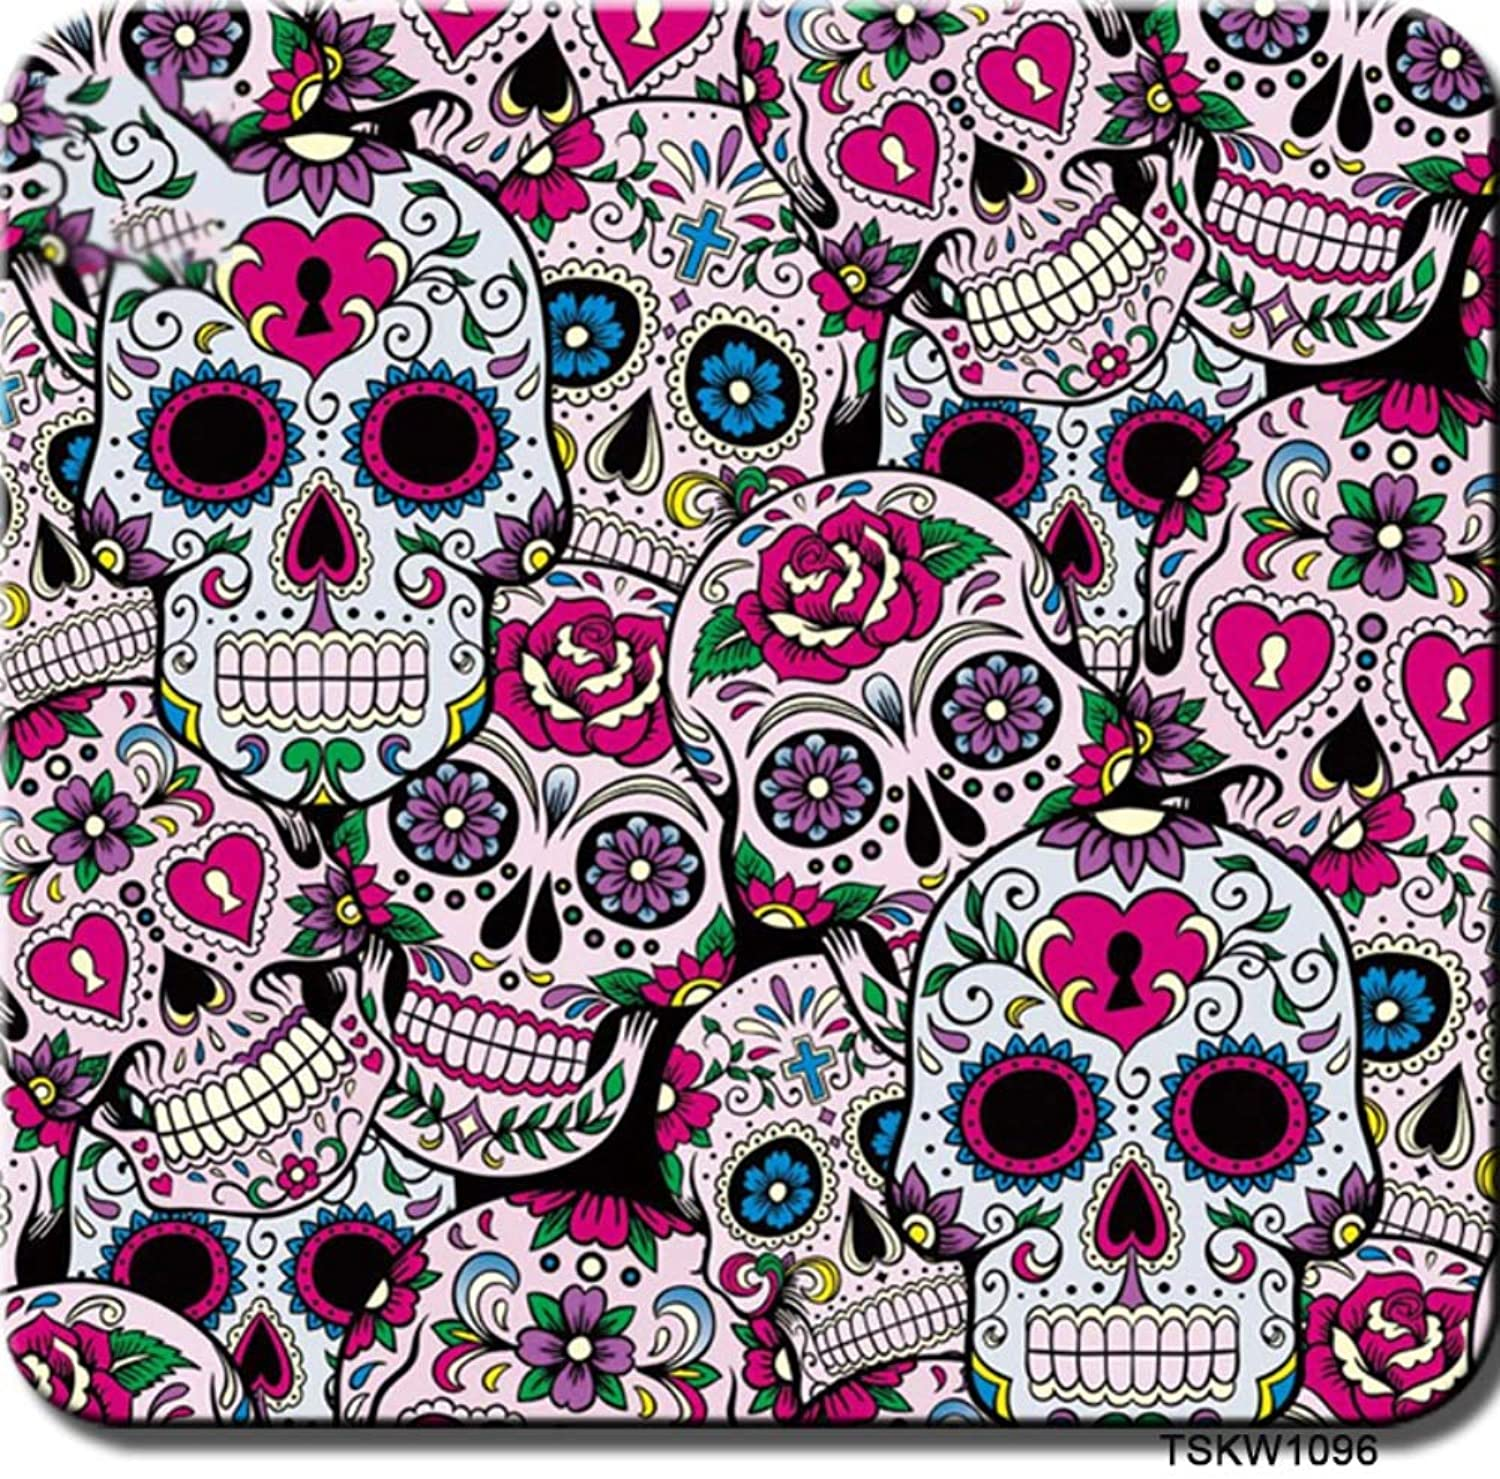 Hydrographics Film Water Transfer Printing Film, Hydrographic Film  Hydro Dipping FilmZombie Skull pattern1.0Meter Multicolor Optional Used for Auto Parts, Cups, Sporting Goods, and Many More  E